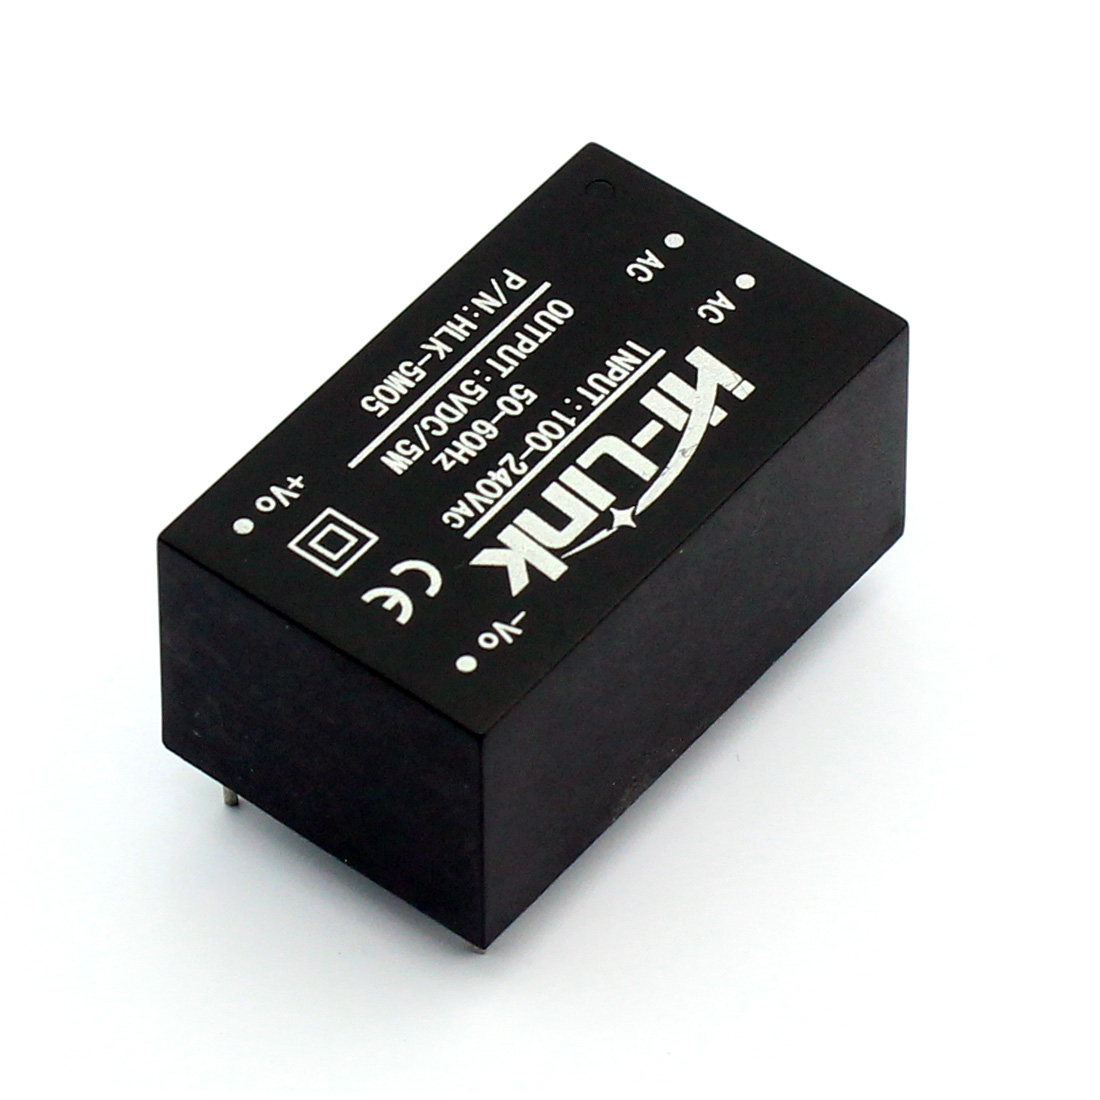 High Quality HLK-5M05 AC DC 220V to 5V 5W 5Watt Isolated Switching Step-Down Power Supply Module Converter HLK 5M05 dc dc step down converter 24v to dual output 15v isolated power module buck switching power supply a2415s 1w quality product